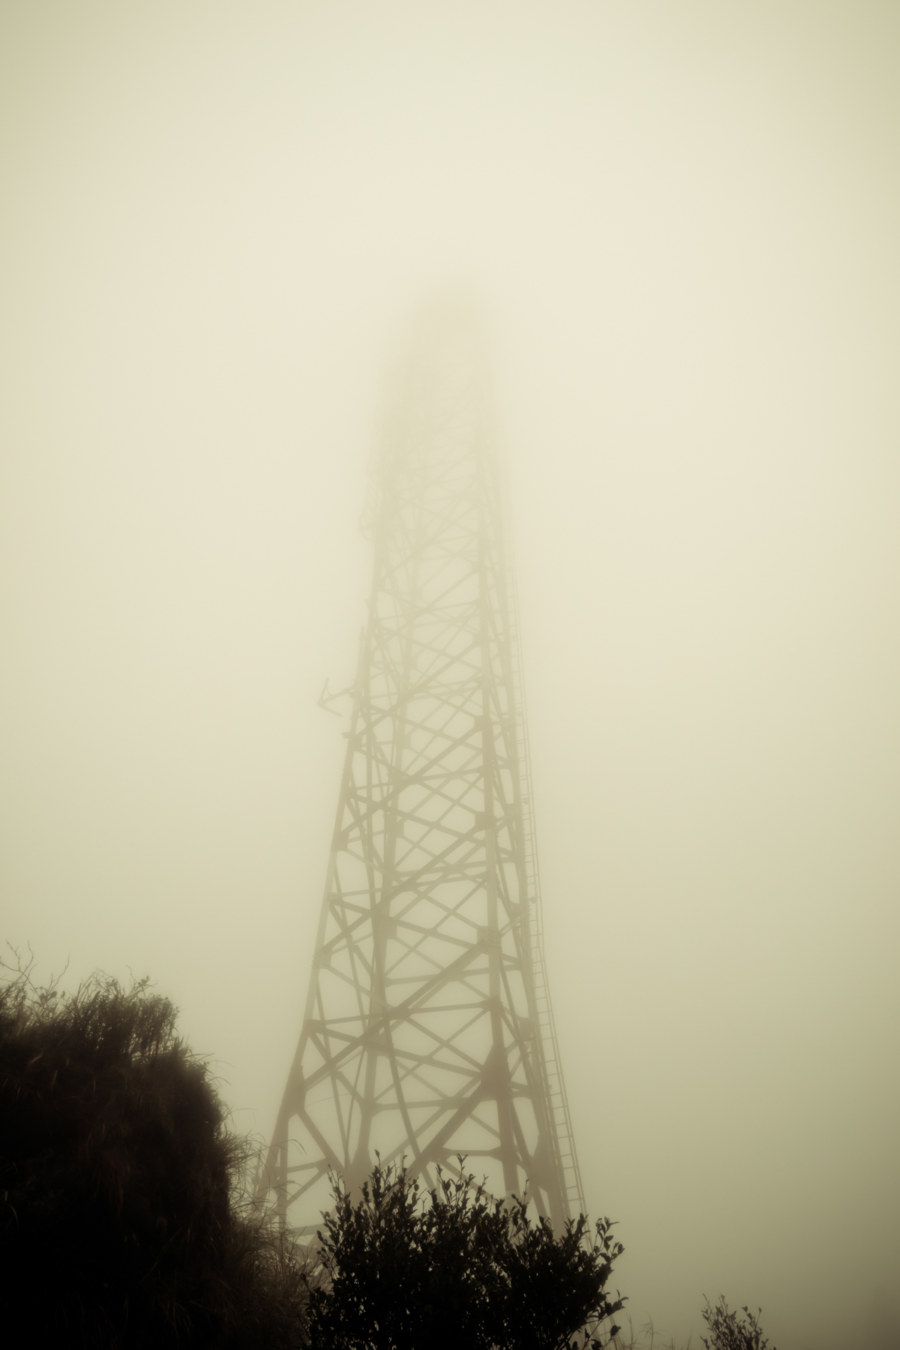 The radio tower above Menghuan pond in the fog